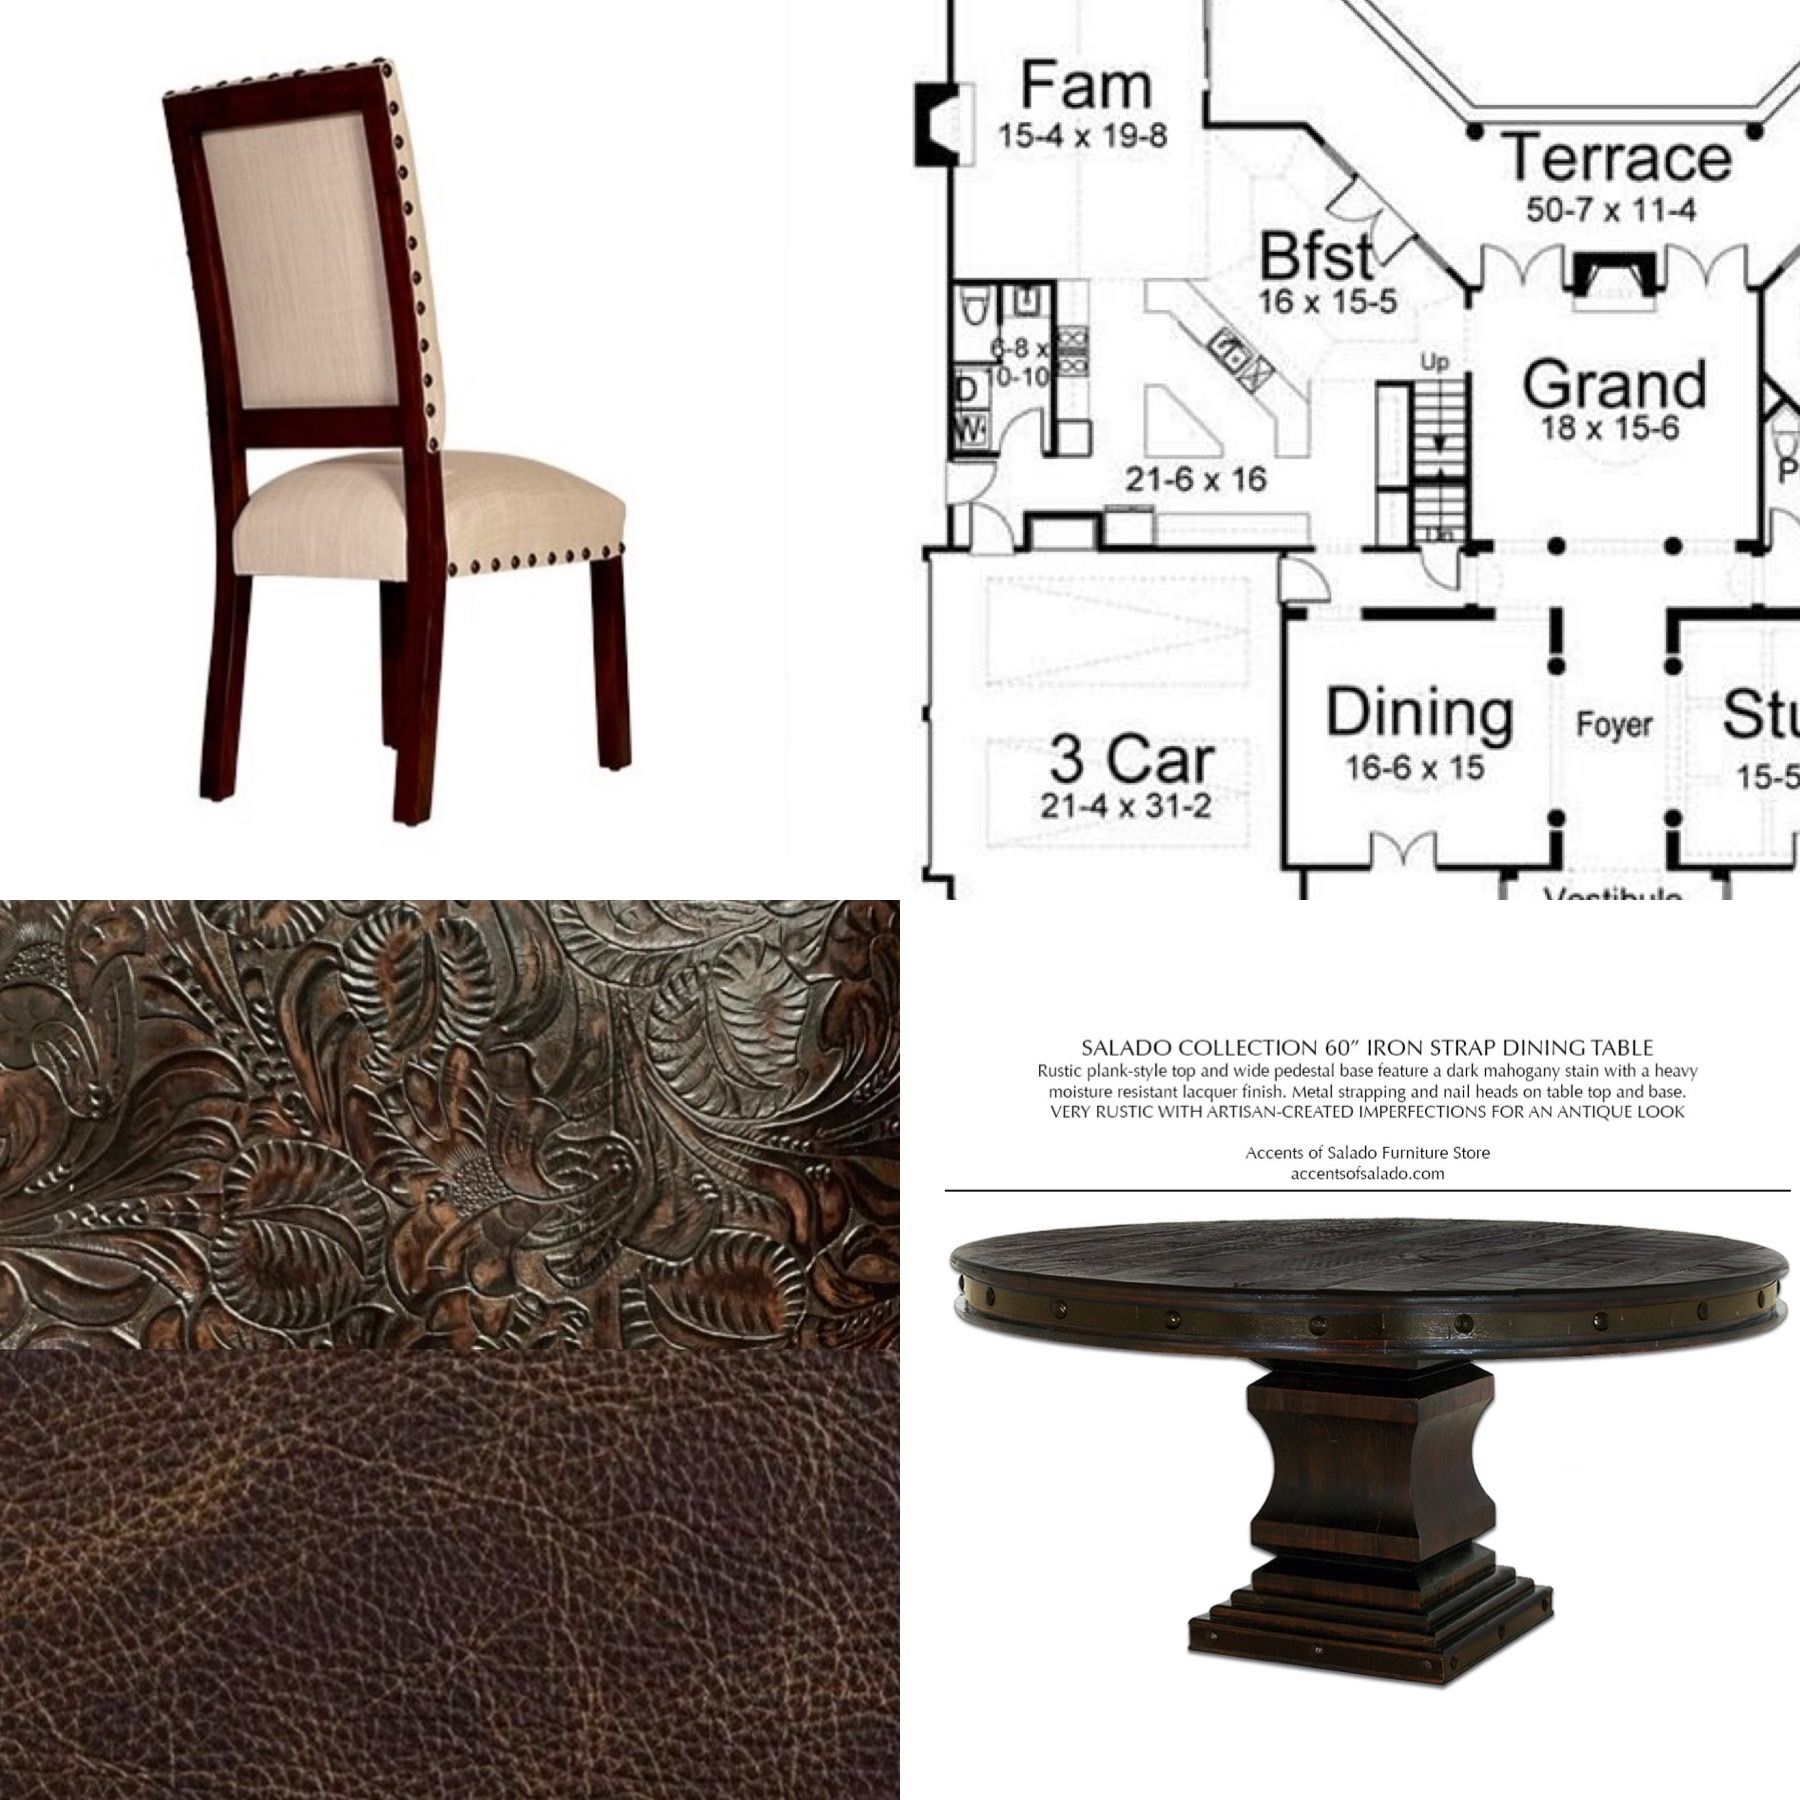 We Created A Custom Old World Dining Chair With Tooled Leather For